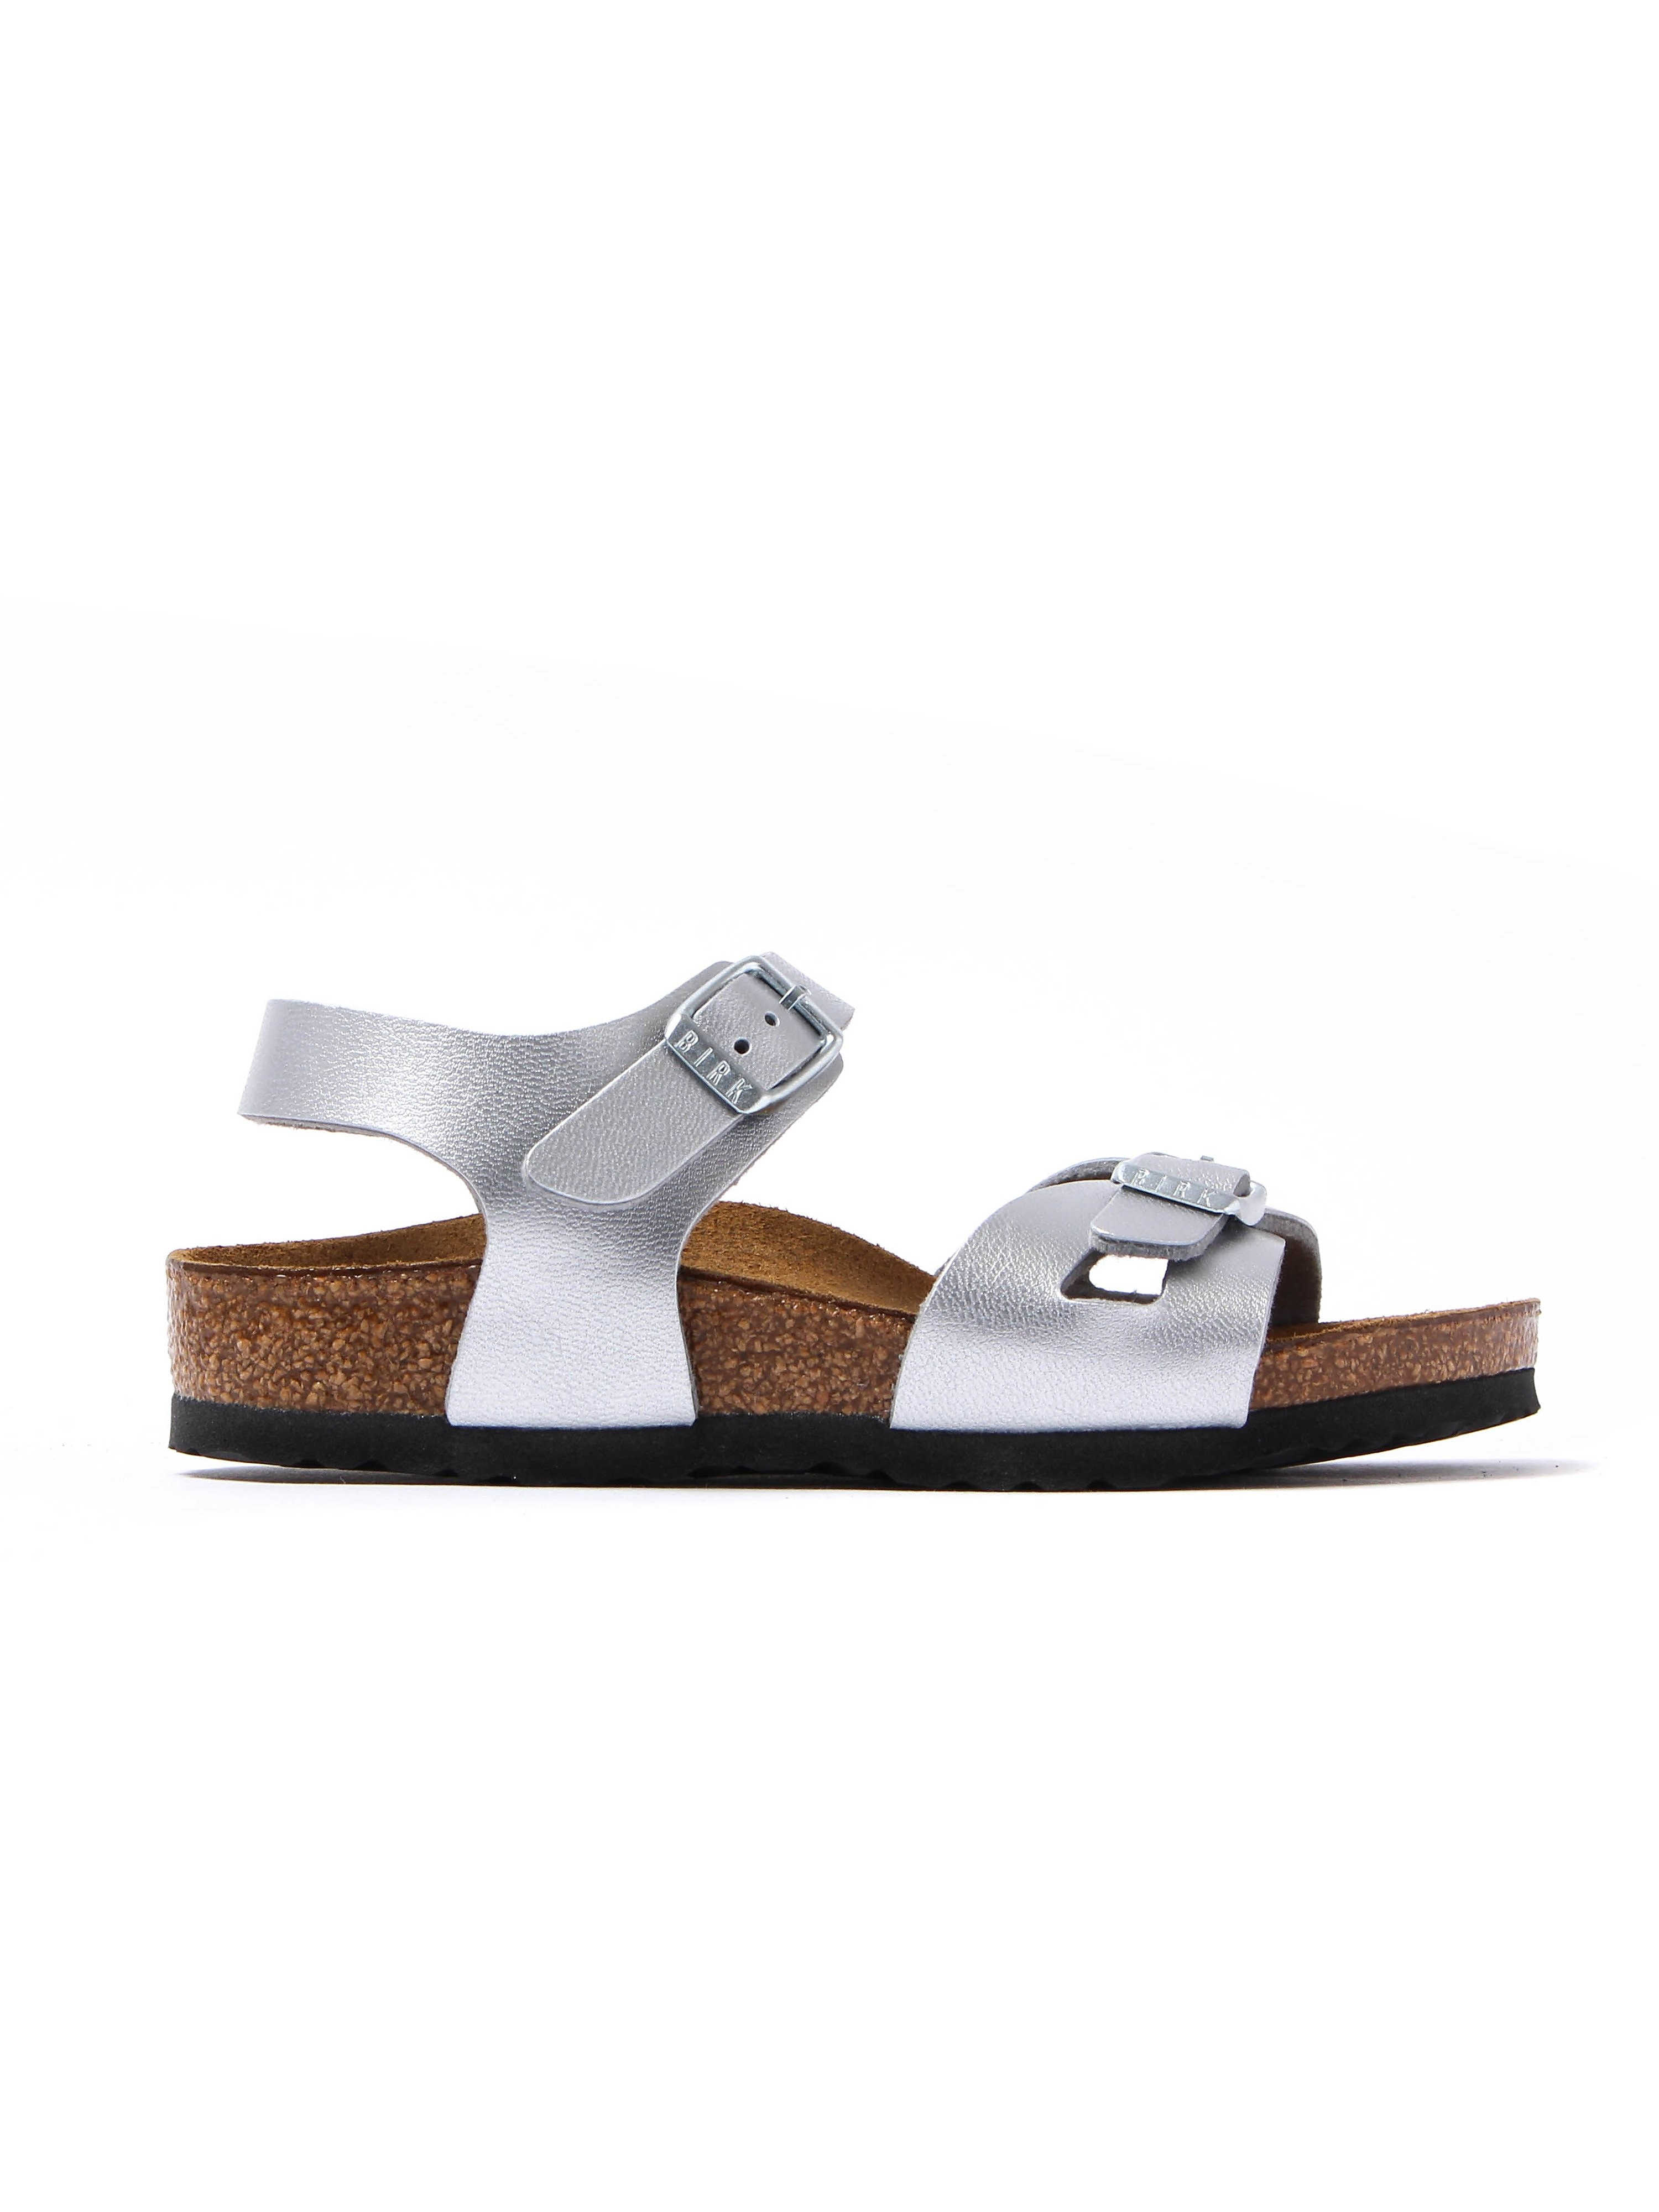 Birkenstock Infant Rio Narrow Fit Sandals - Silver